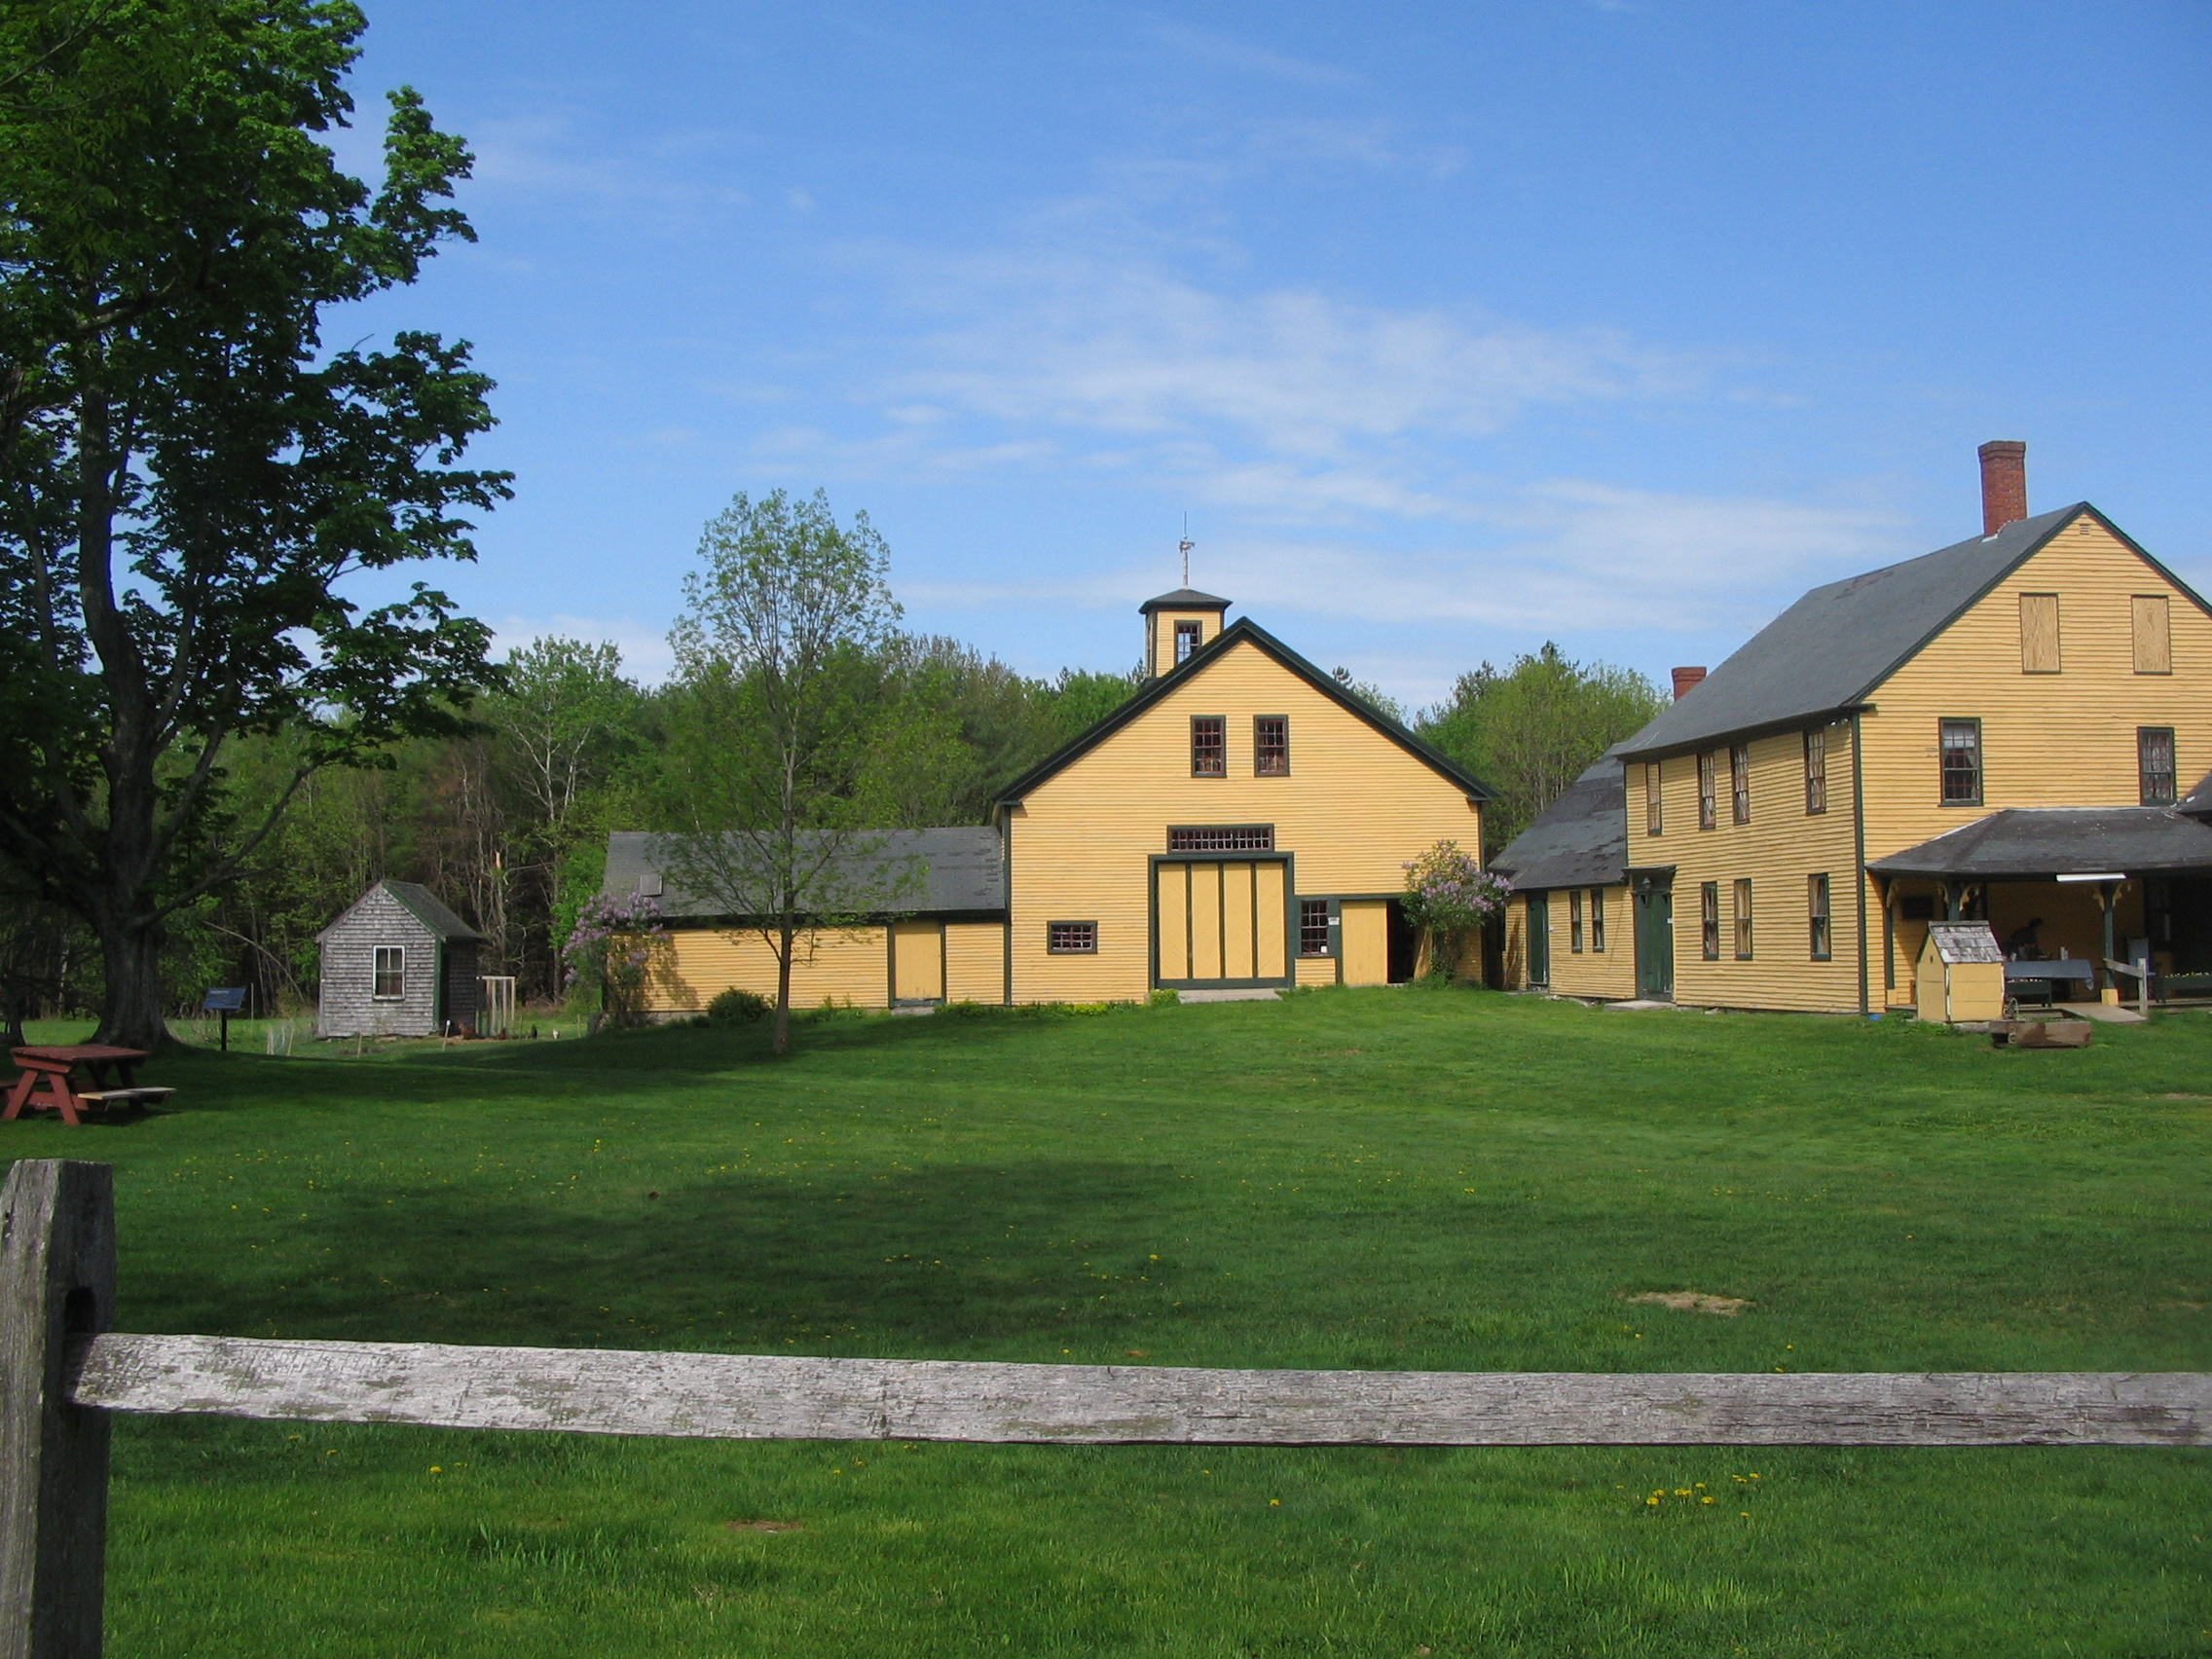 New England Barns For Sale Of Big House Little House Back House Barn Dream New England